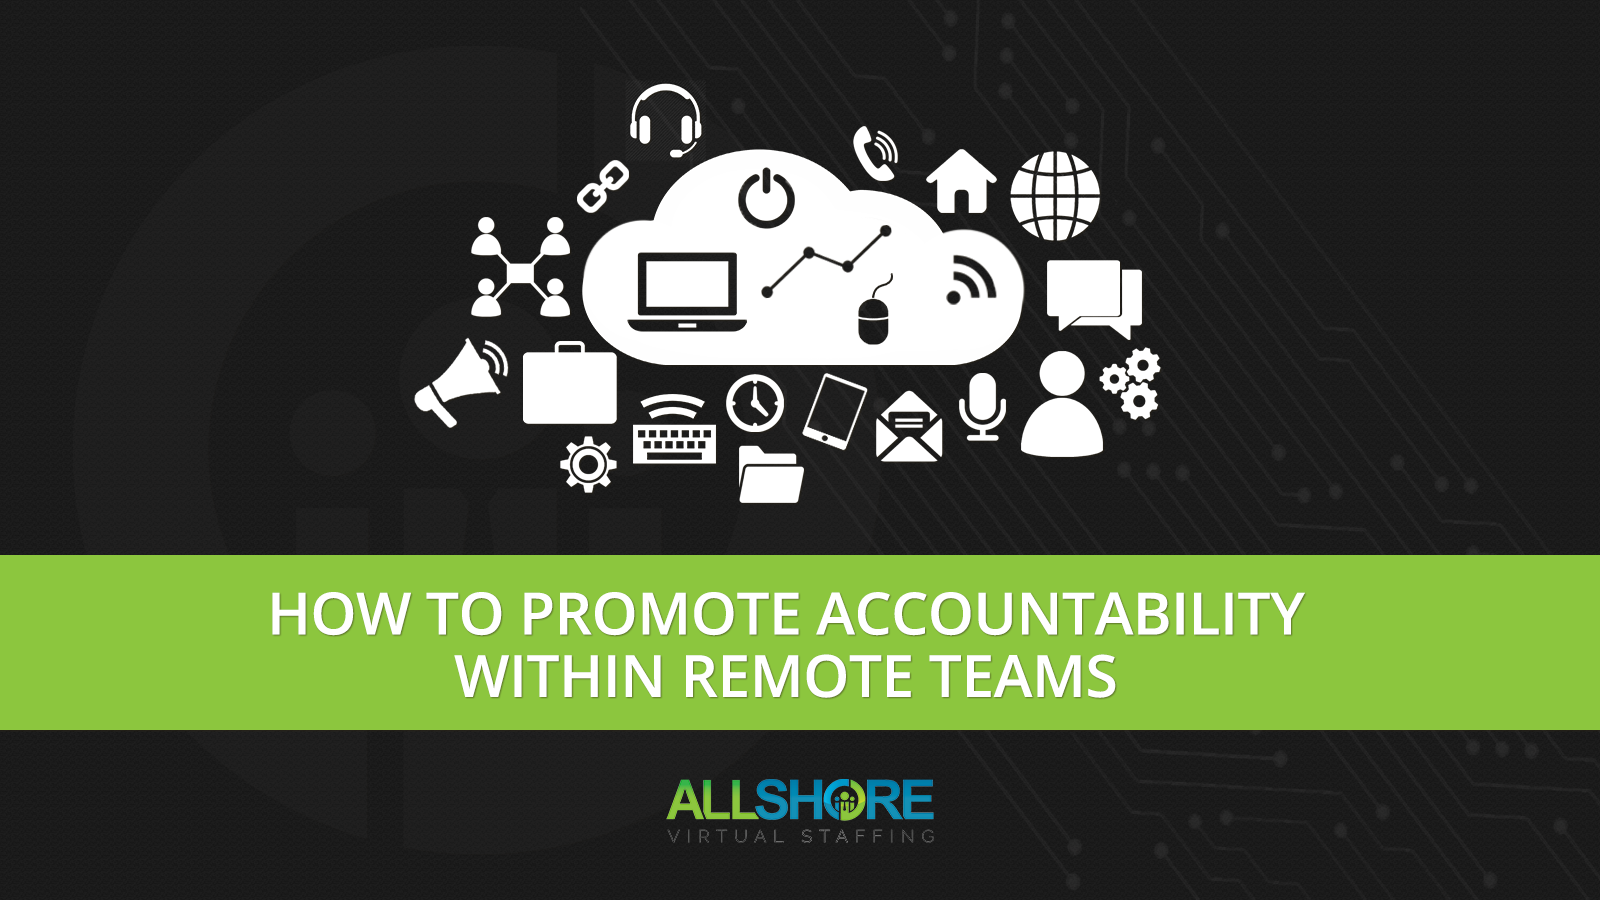 How to Promote Accountability Within Remote Teams